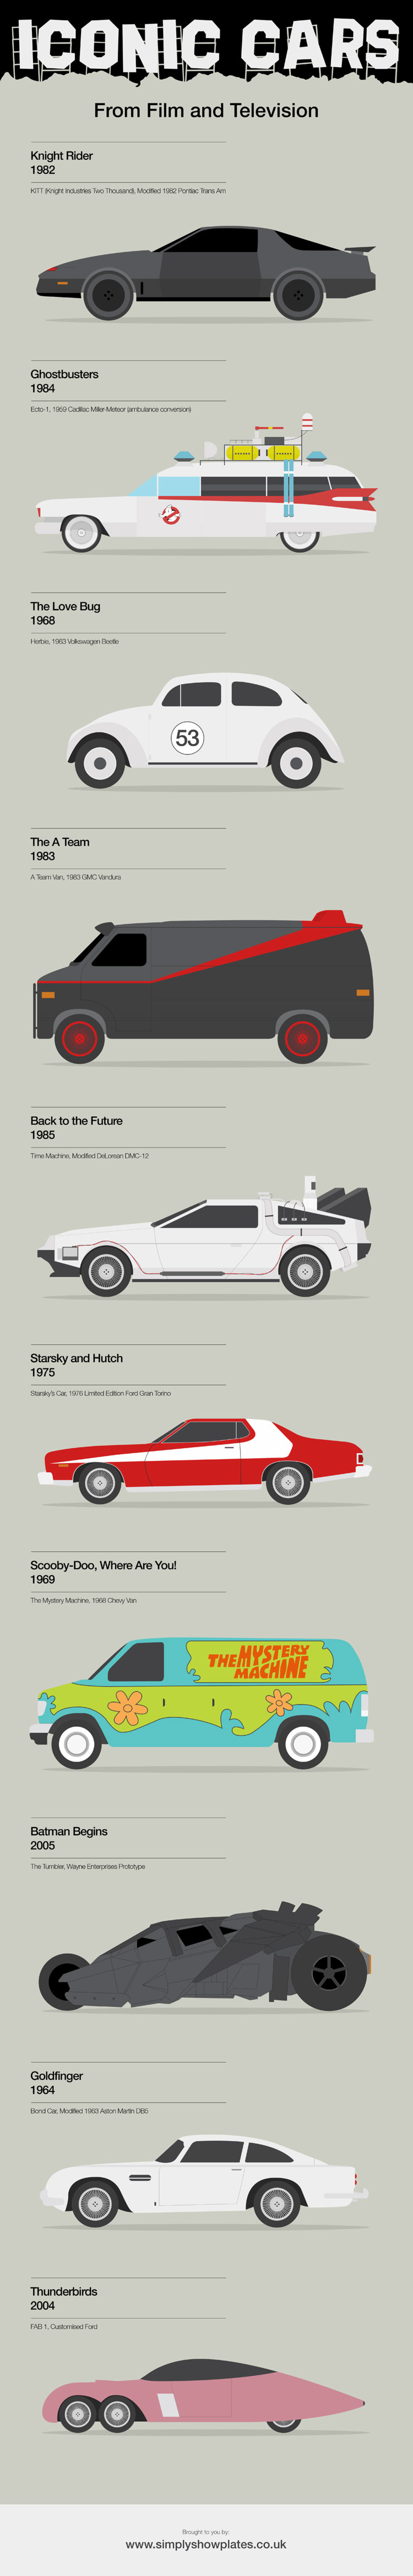 Iconic Cars from Film and Television Infographic